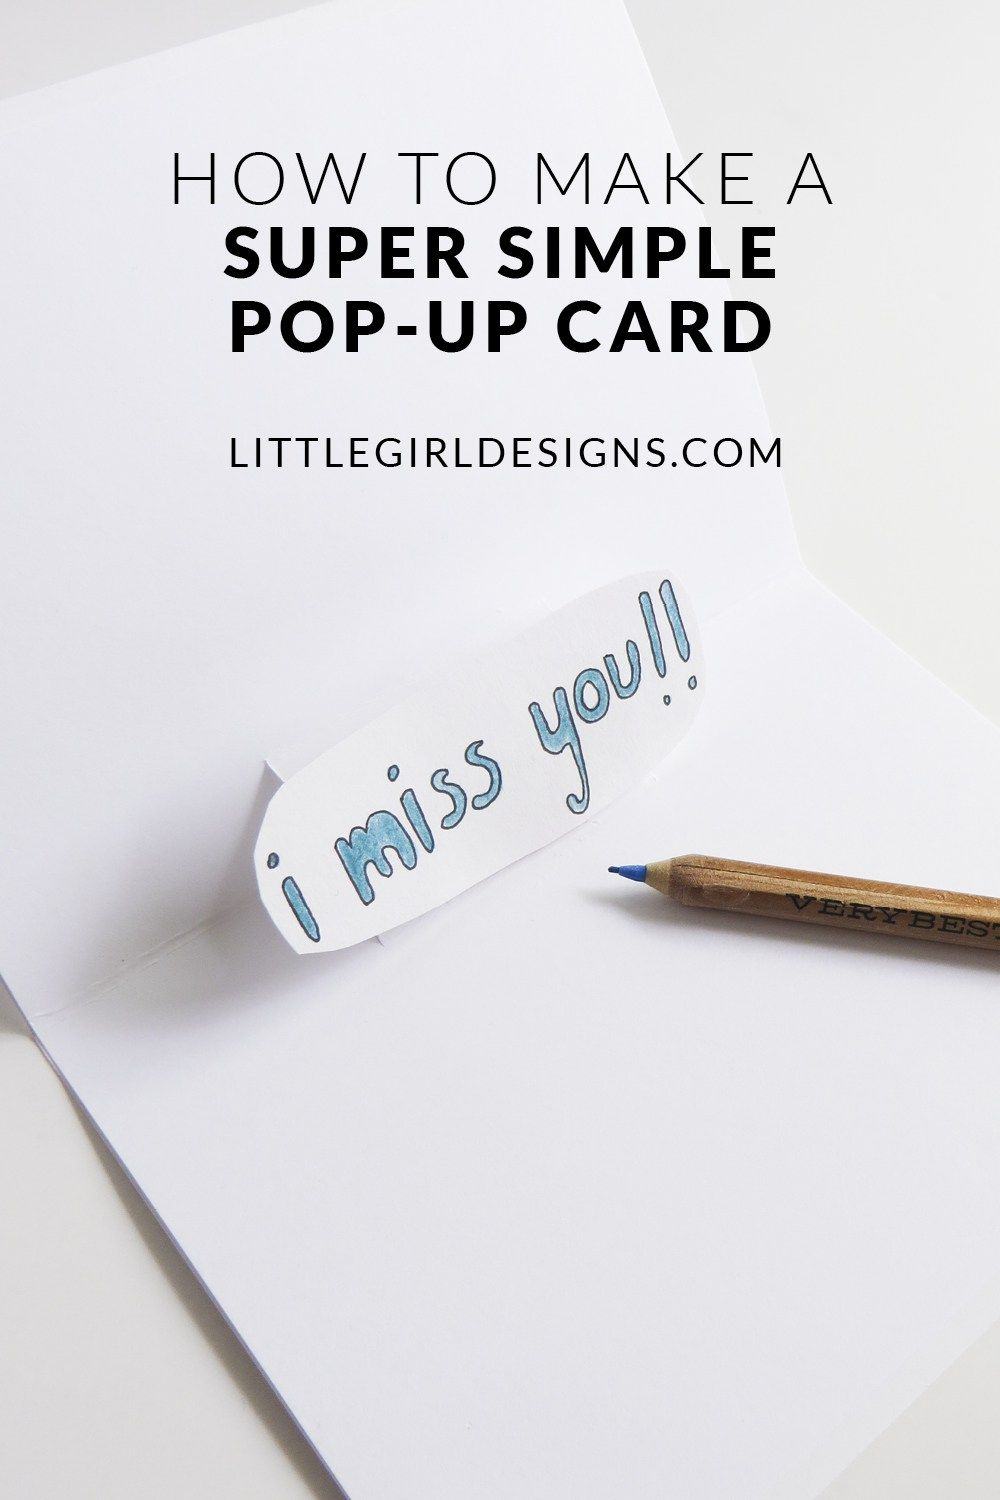 Pop Up Card For Pocket Letters The V W Card Tutorial Pocket Letters Card Tutorial Pocket Letters Tutorials